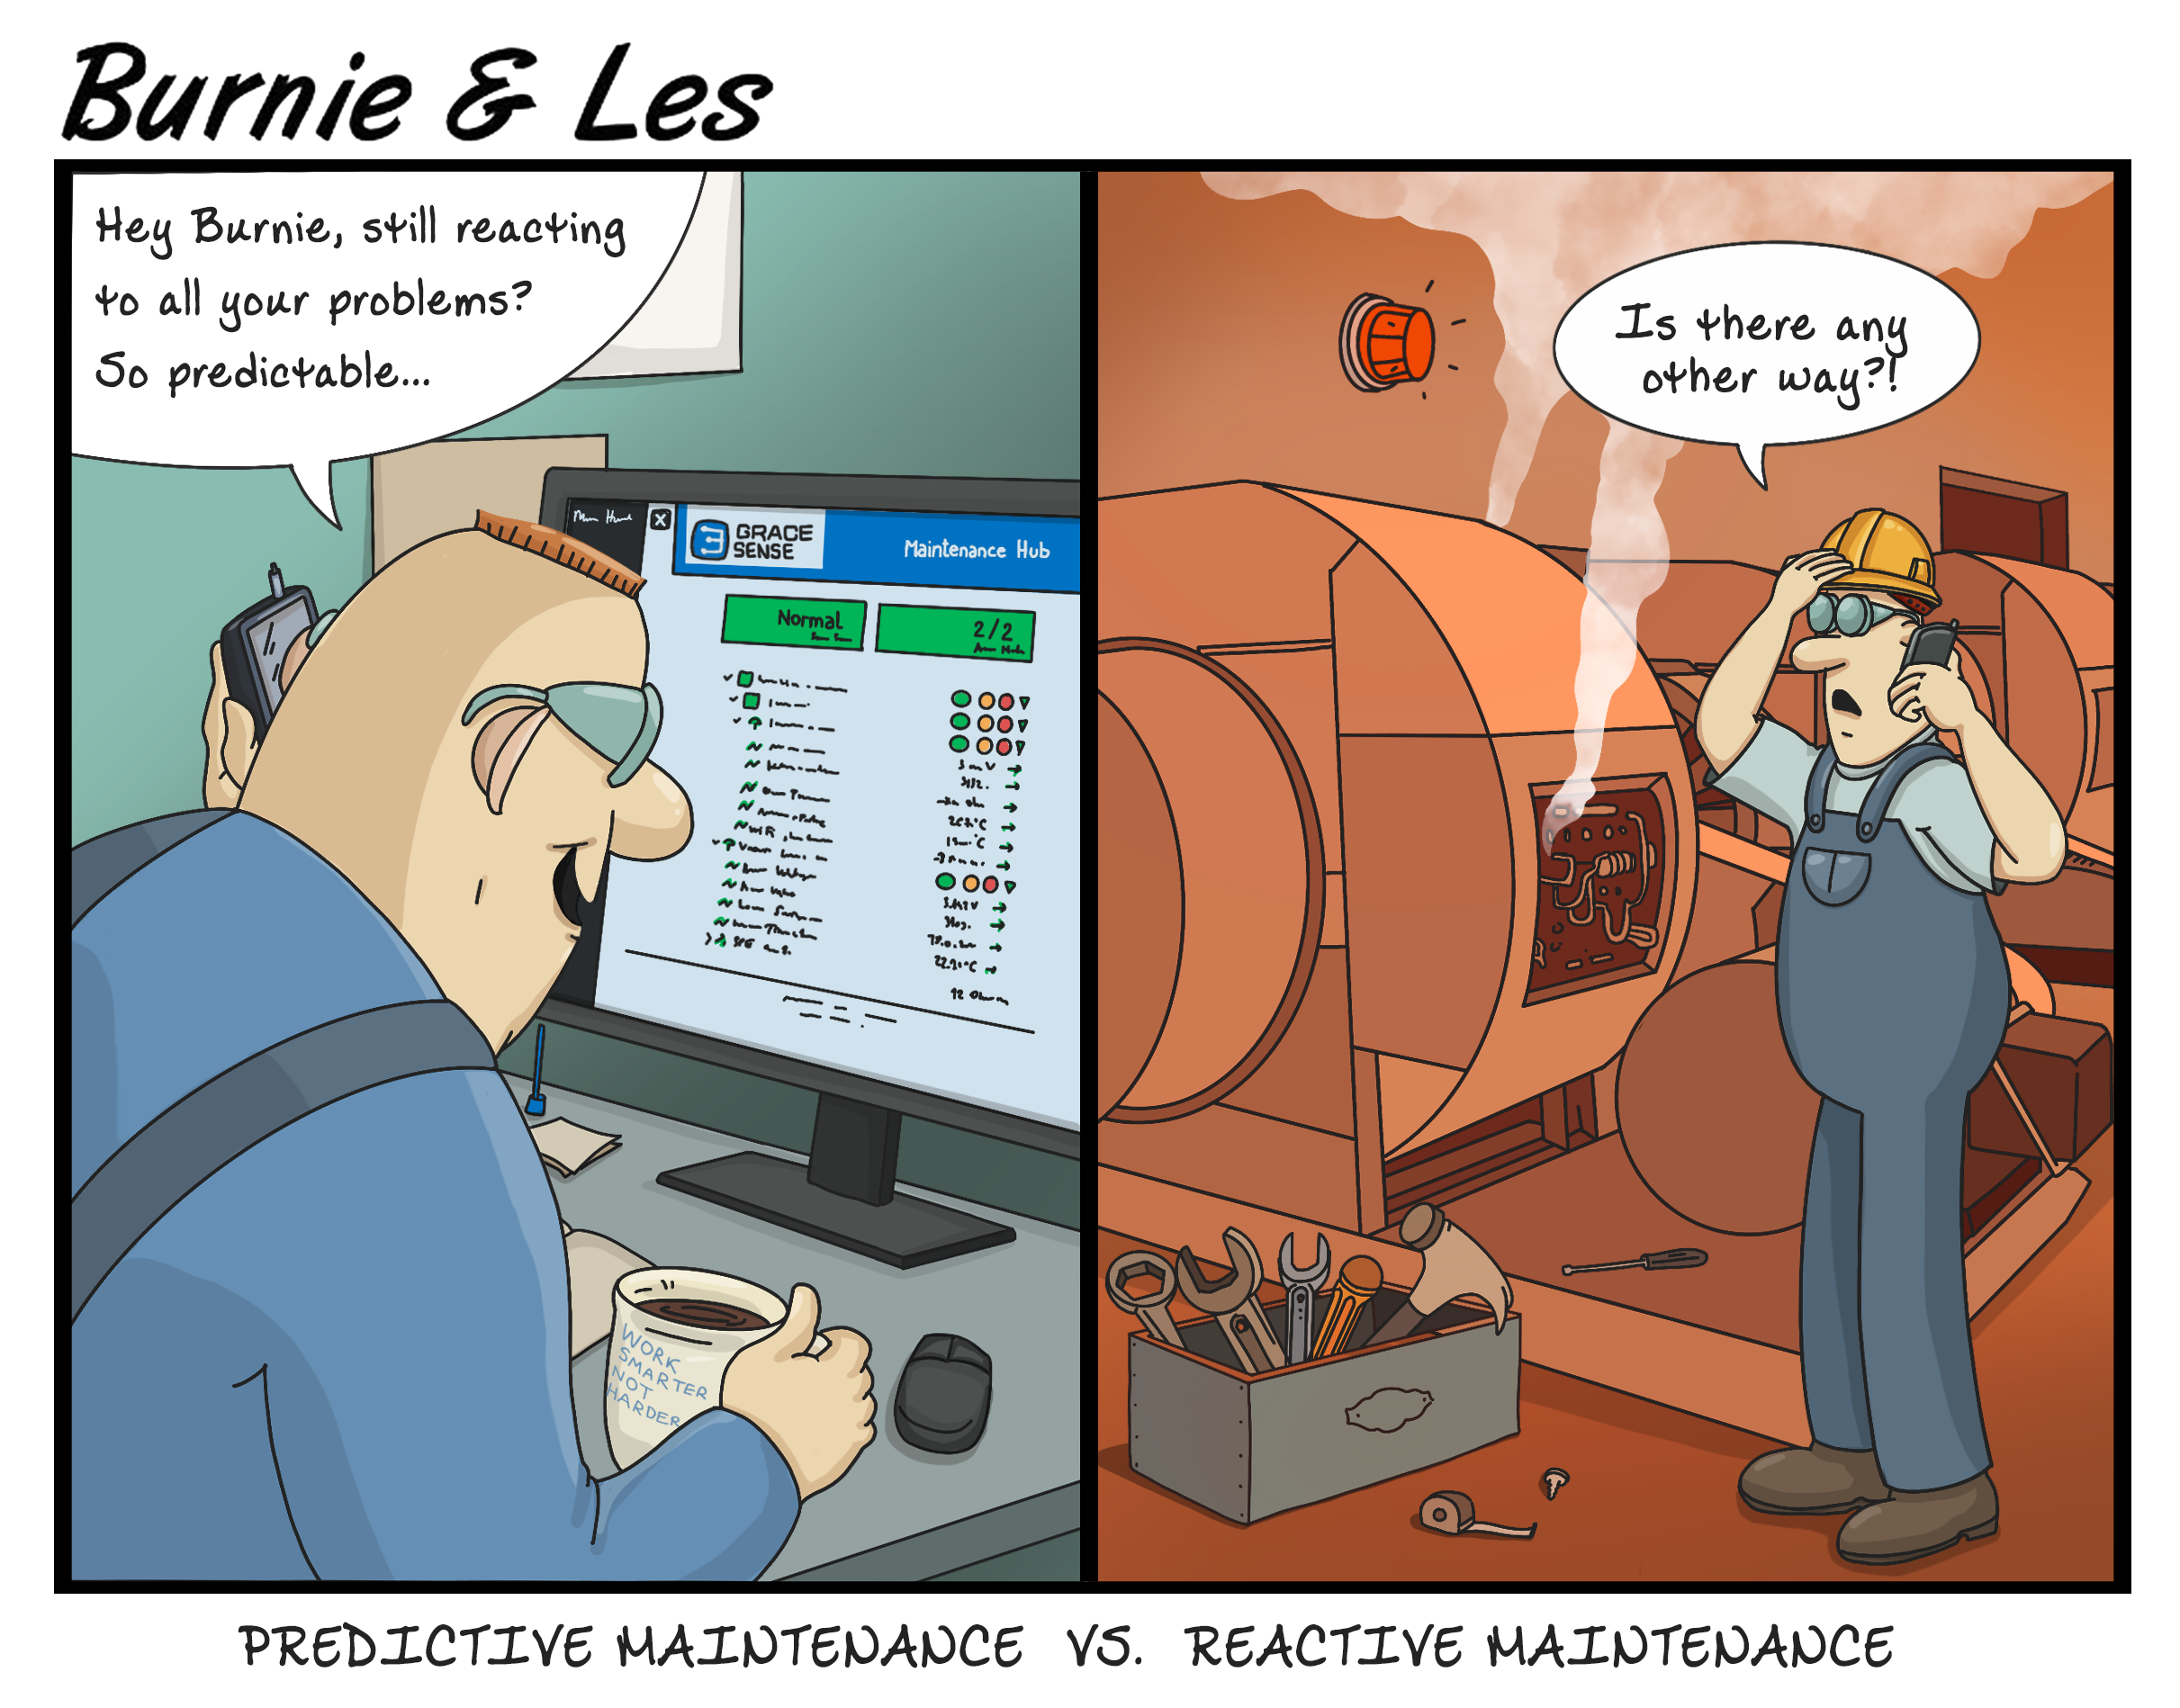 Burnie and Les_Predictive maintenance vs Reactive maintenance